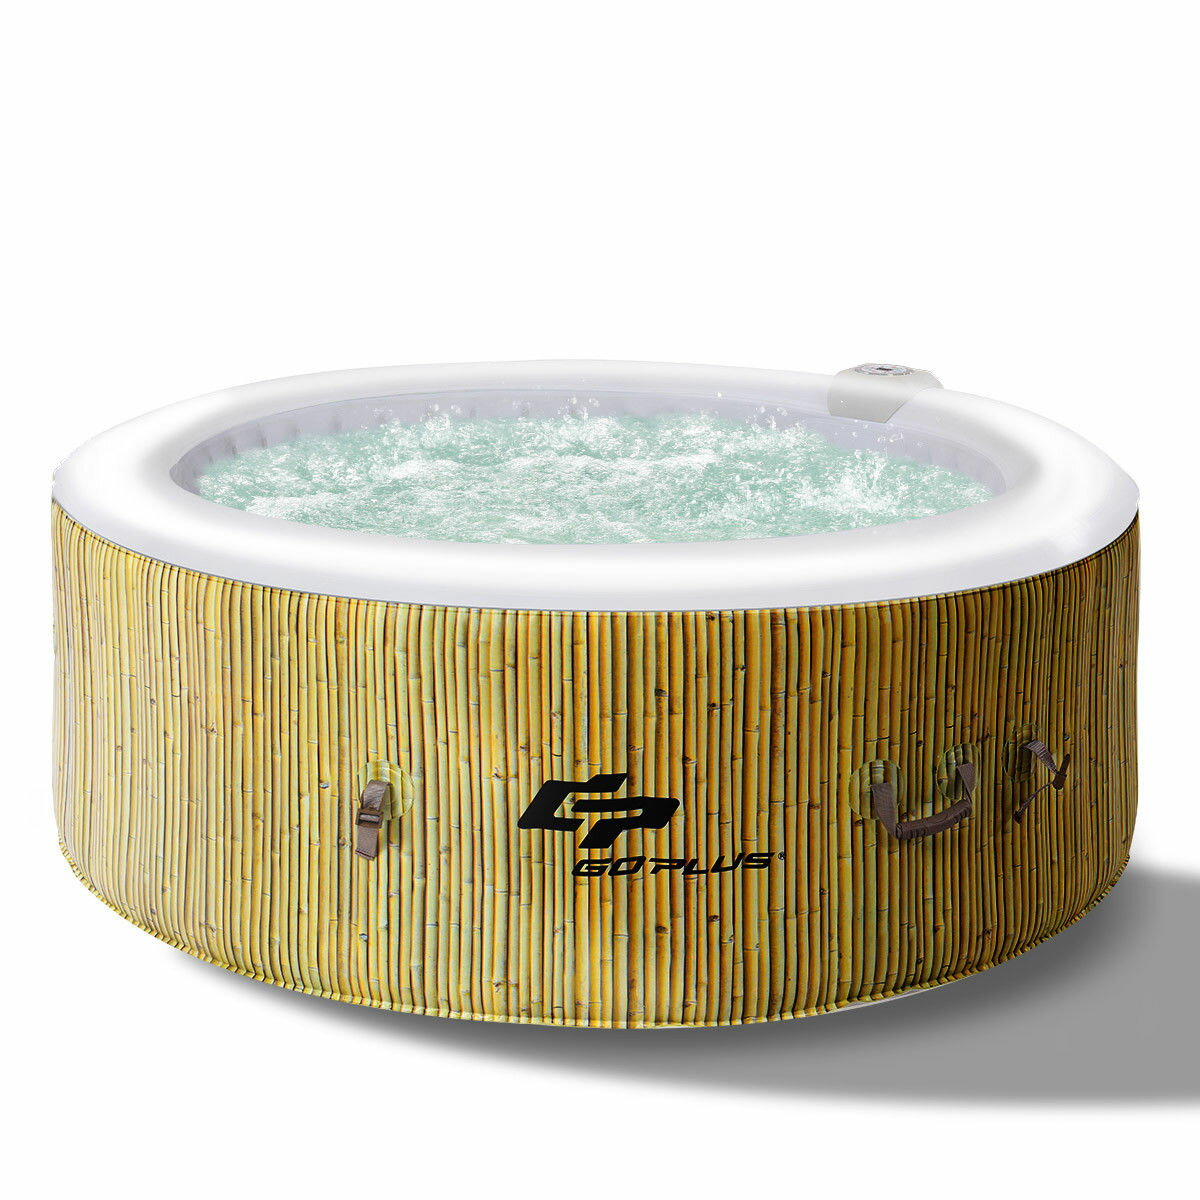 Costway | Rakuten: Goplus 4 Person Inflatable Hot Tub Outdoor Jets ...